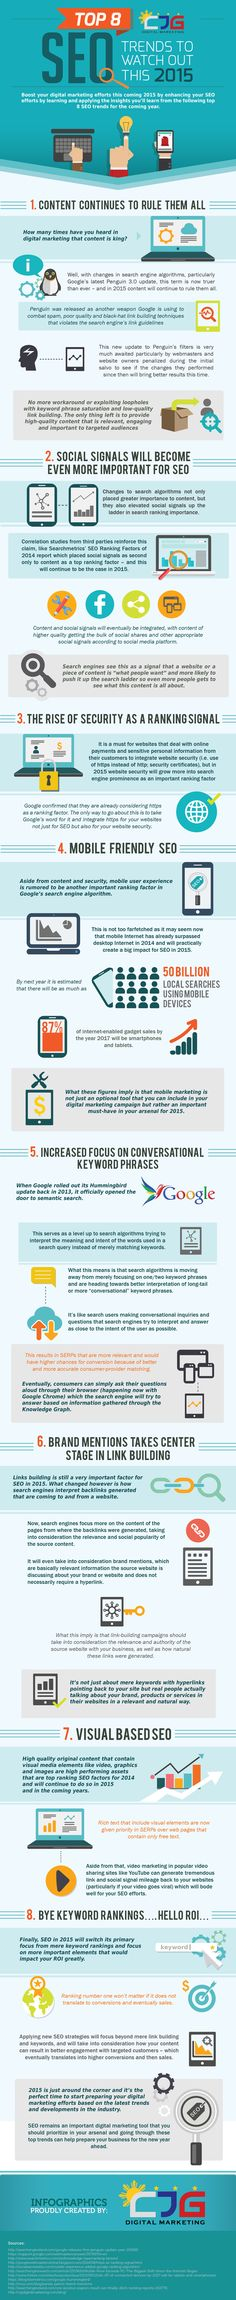 Fresh infographic from our blog! Top 8 SEO Trends to Watch Out this 2015. #seo2015 #seofor2015